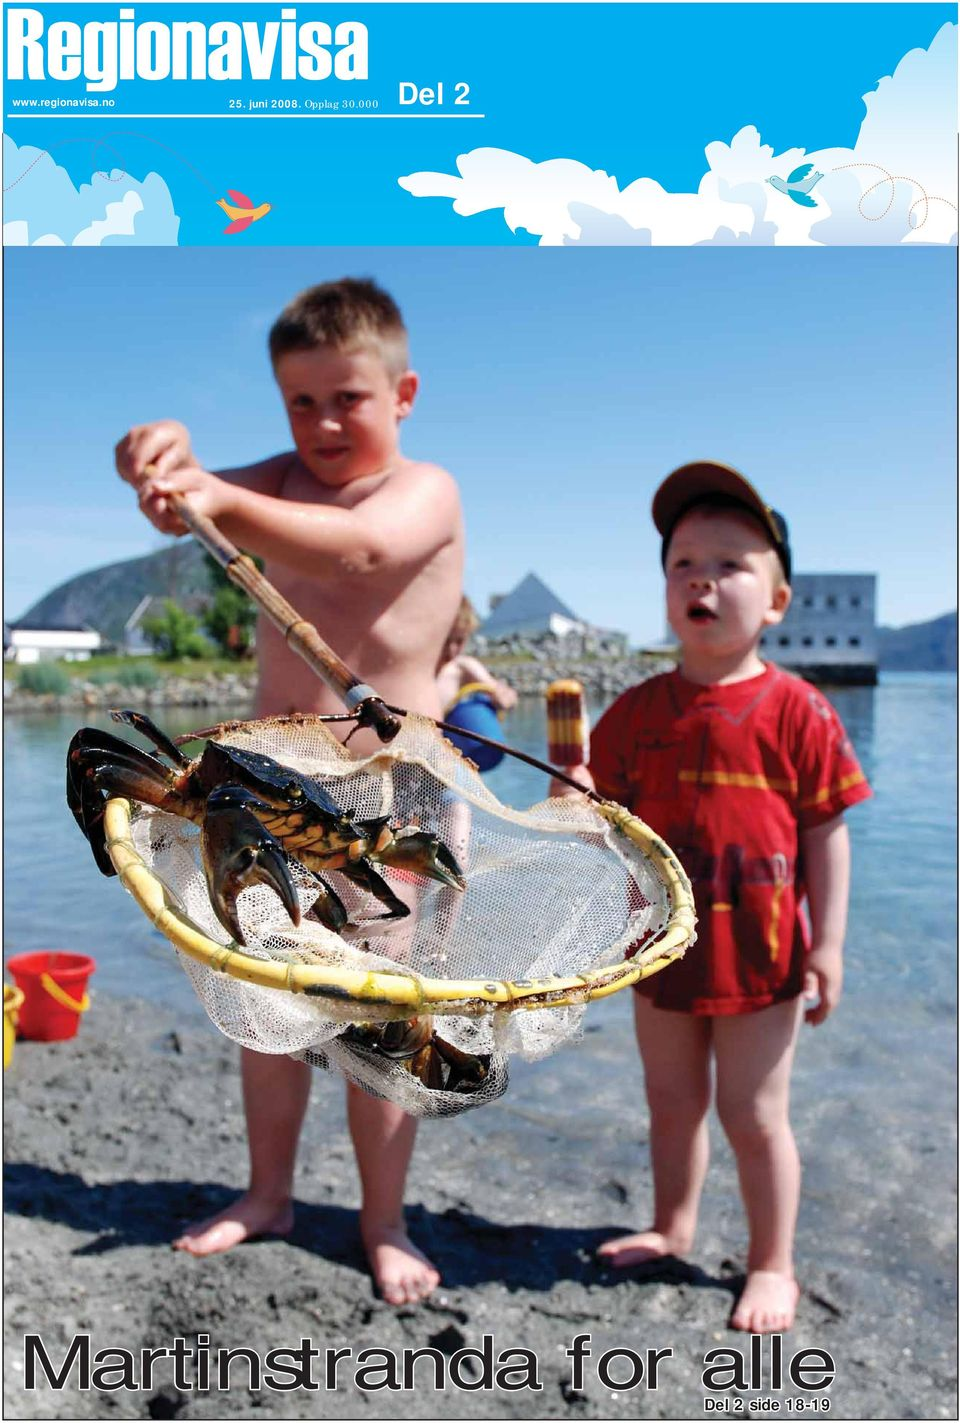 000 el 2 Martinstranda